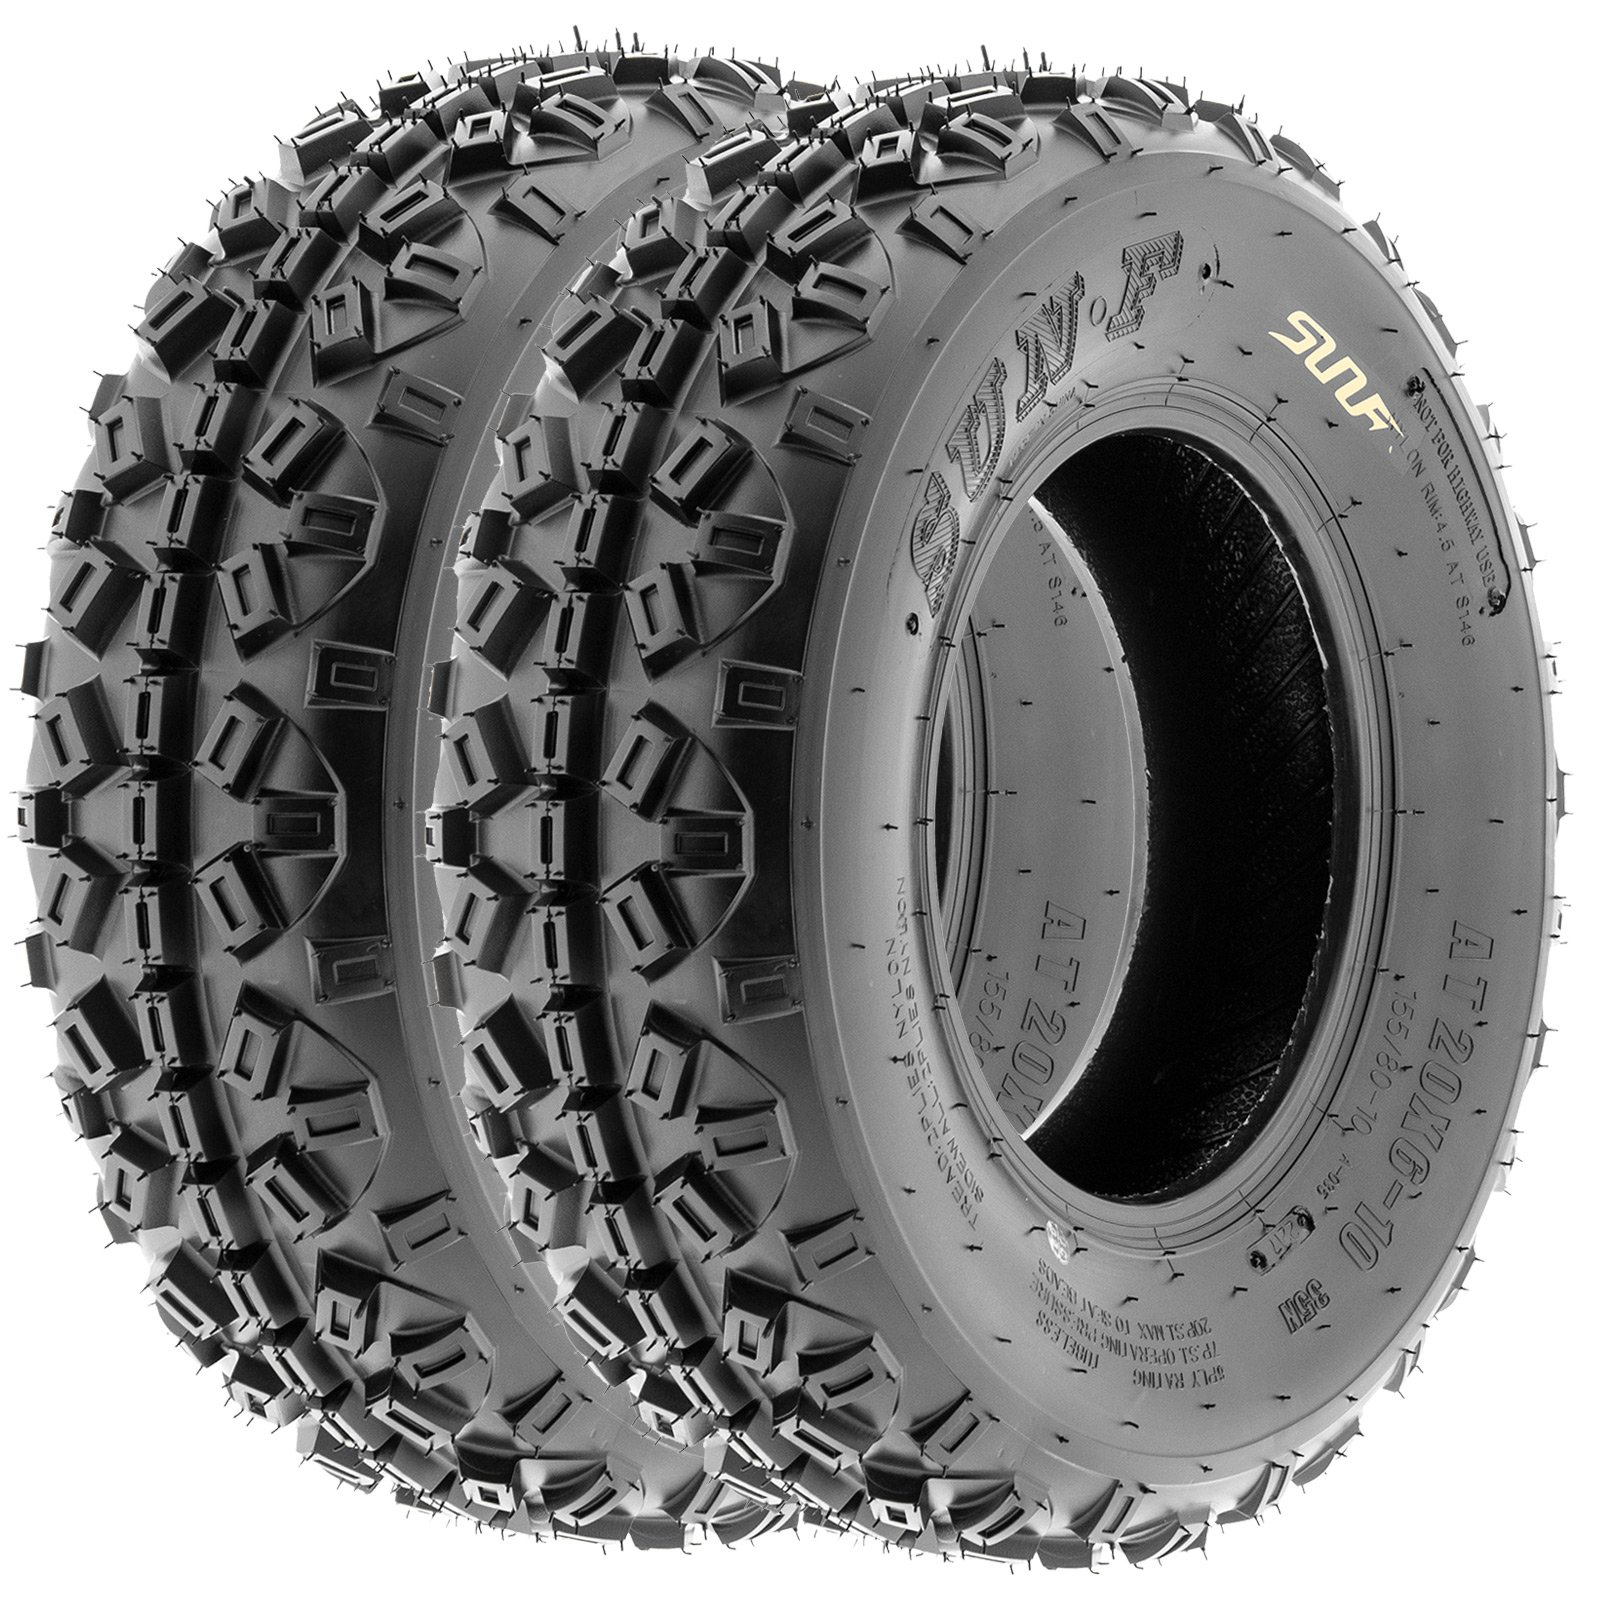 SunF Knobby XC MX ATV Tires 21x6-10 & 20x11-9 6 PR A035 (Full set of 4, Front & Rear) by SunF (Image #2)